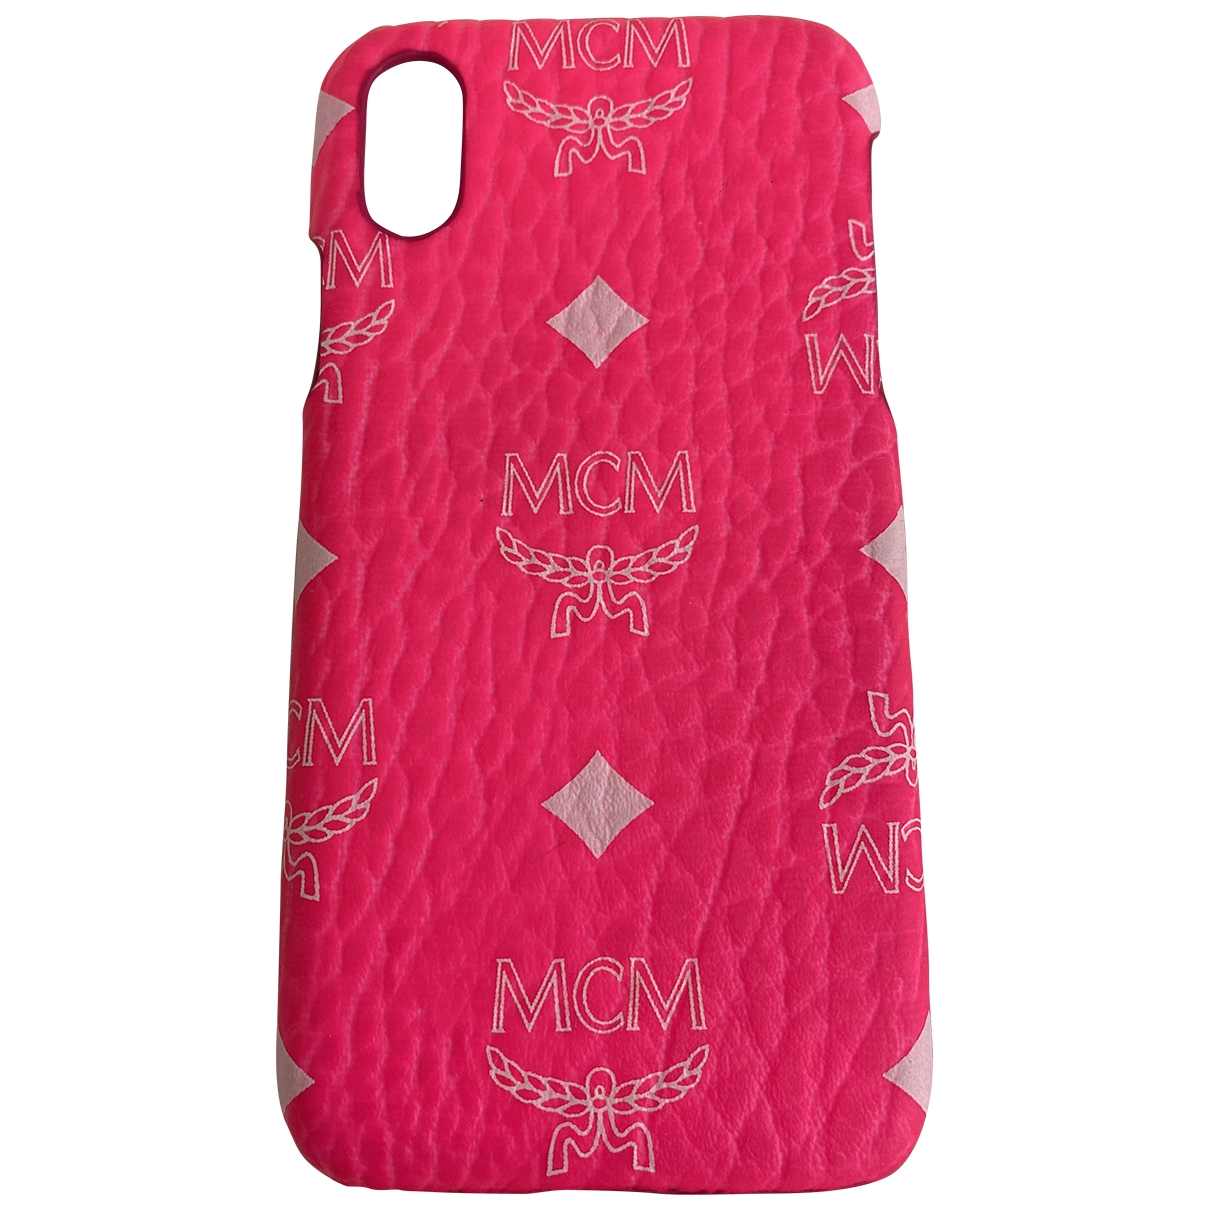 Mcm \N Pink Accessories for Life & Living \N